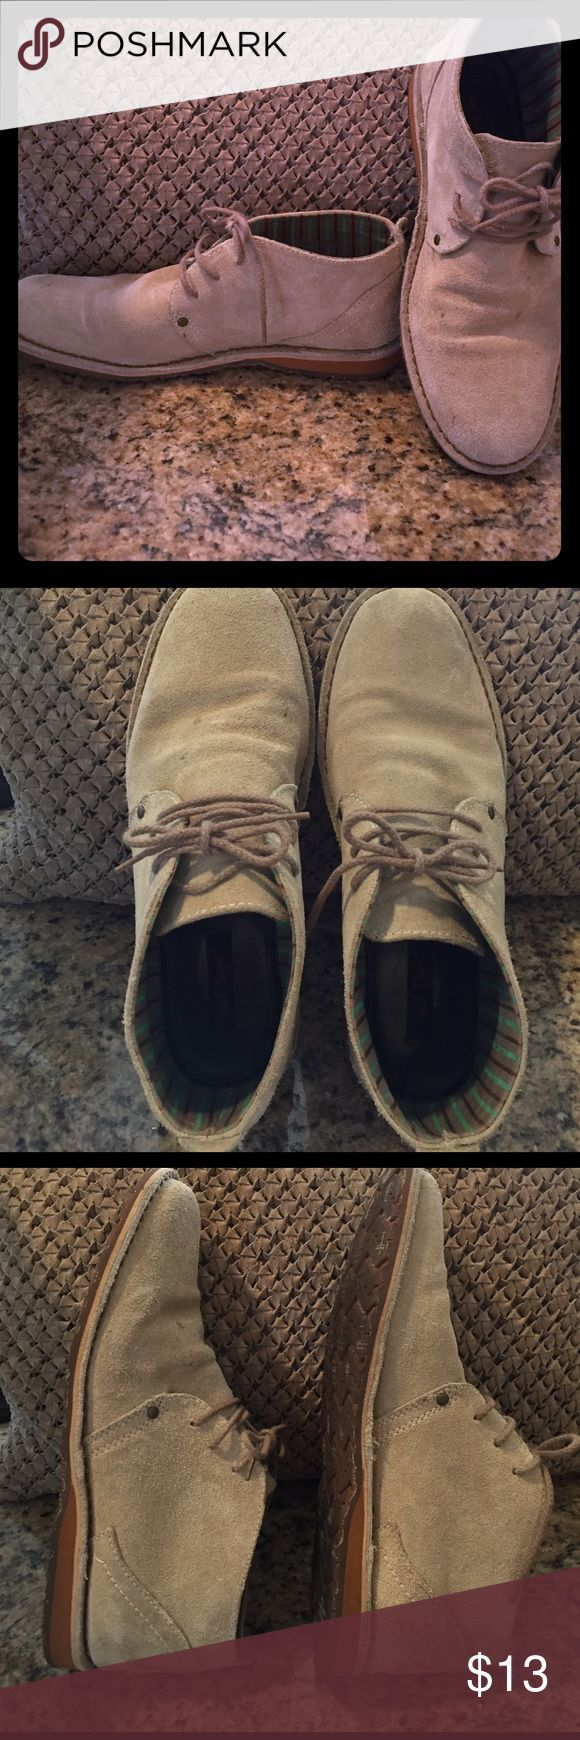 MEN'S RED TAPE RUGGED SUEDE CHUKKA BOOTS Taupe colored chukka boots suede size 10 GOOD condition red tape Shoes Chukka Boots